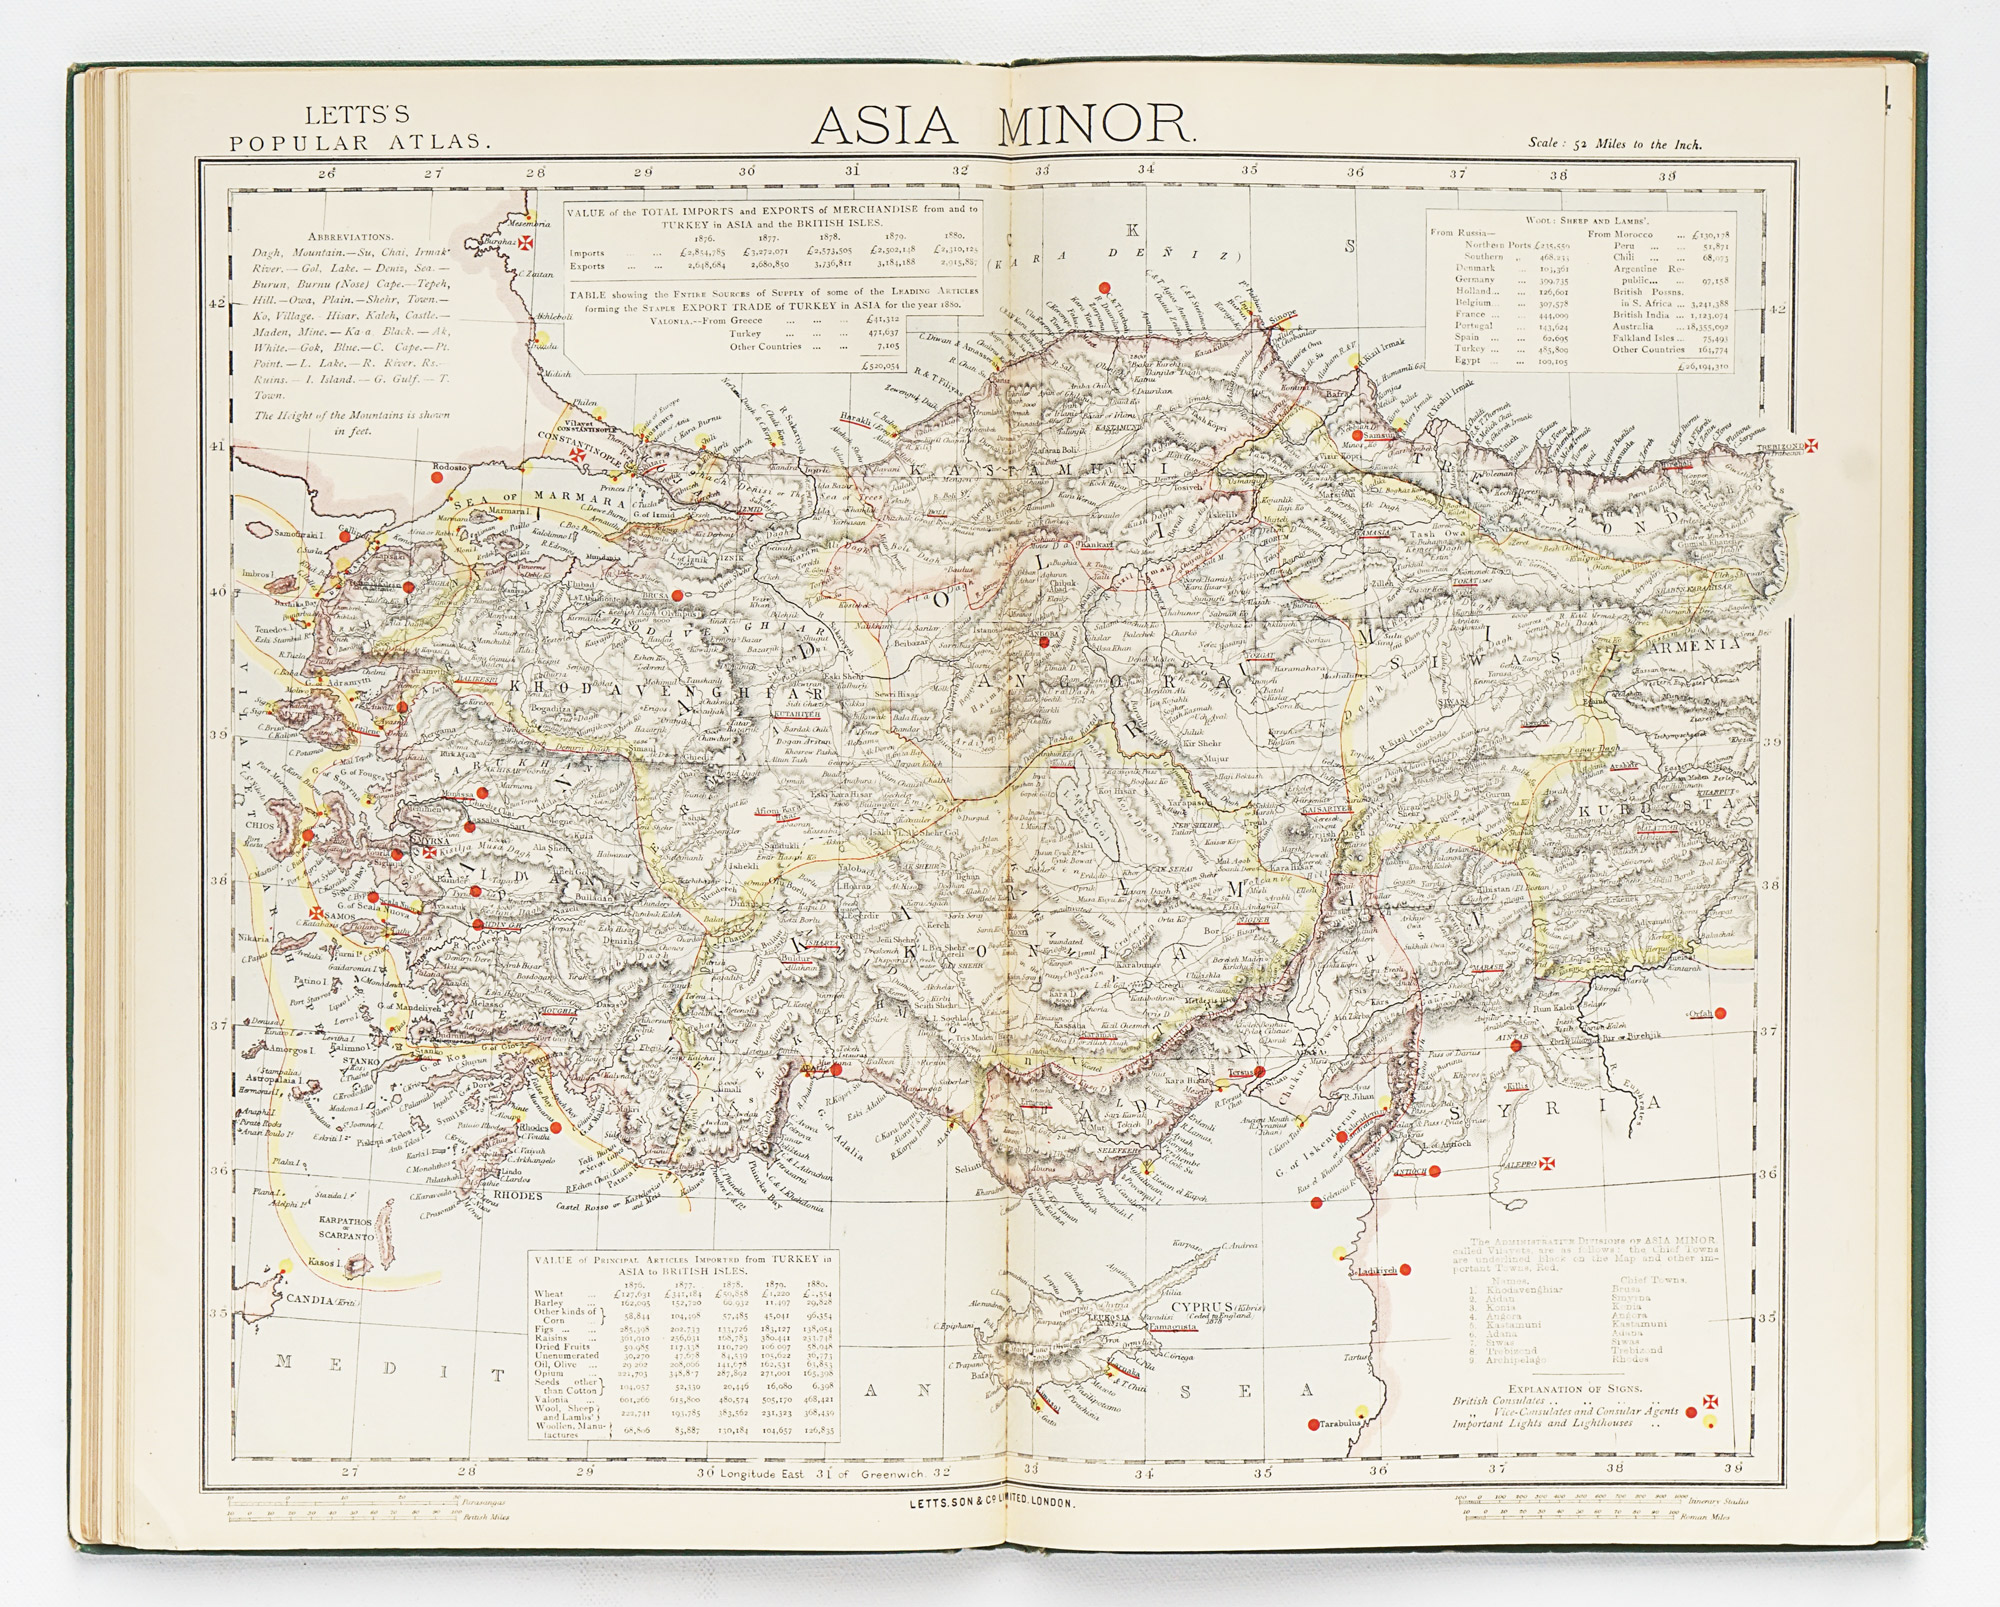 Letts's Popular Atlas - Foreign